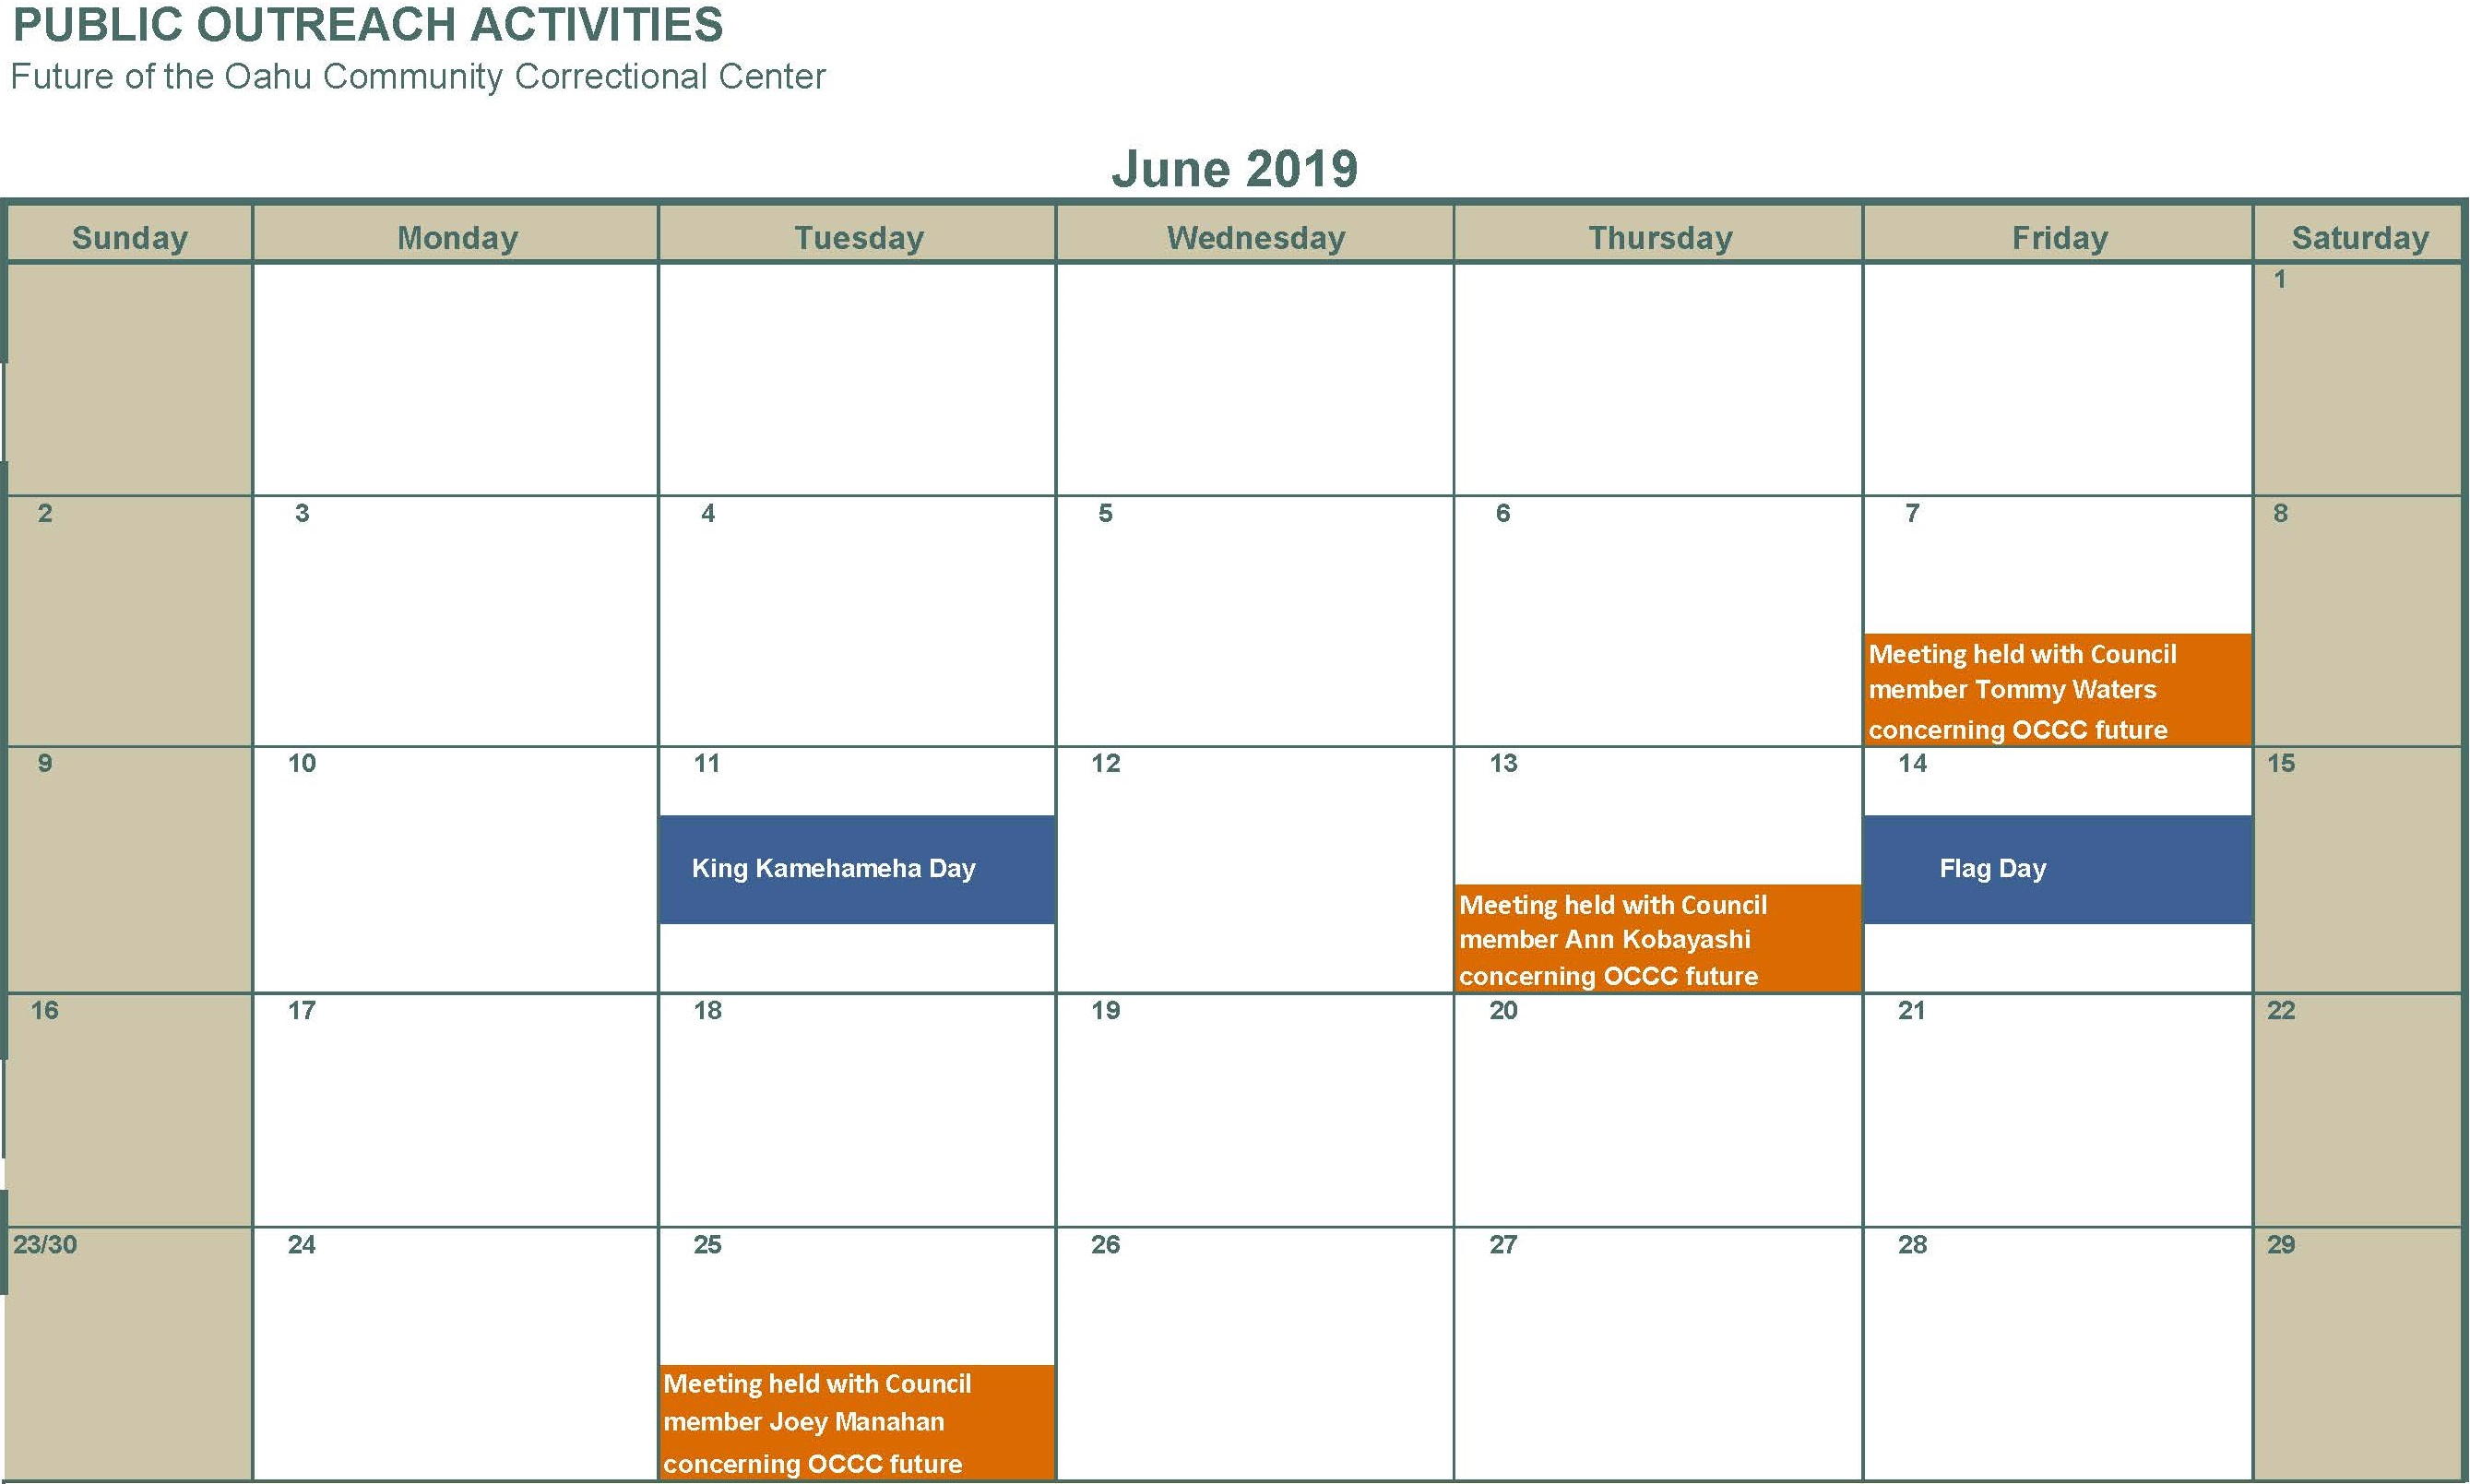 June 2019 Individual meetings with Council member Tommy Waters Ann Kobayashi and Joey Manahan